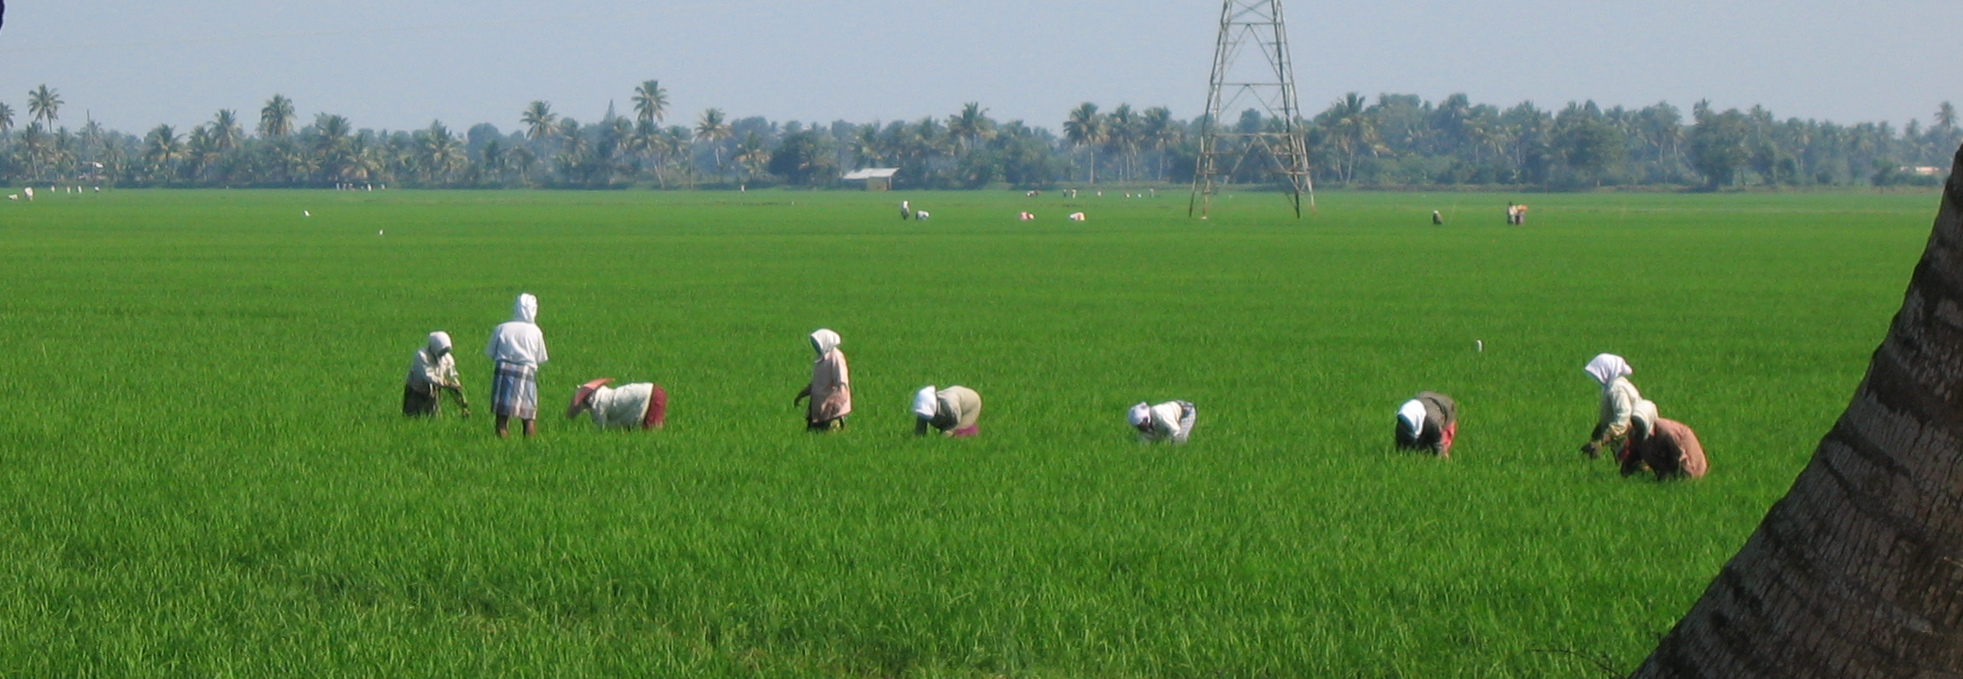 paddy fields in india.jpg